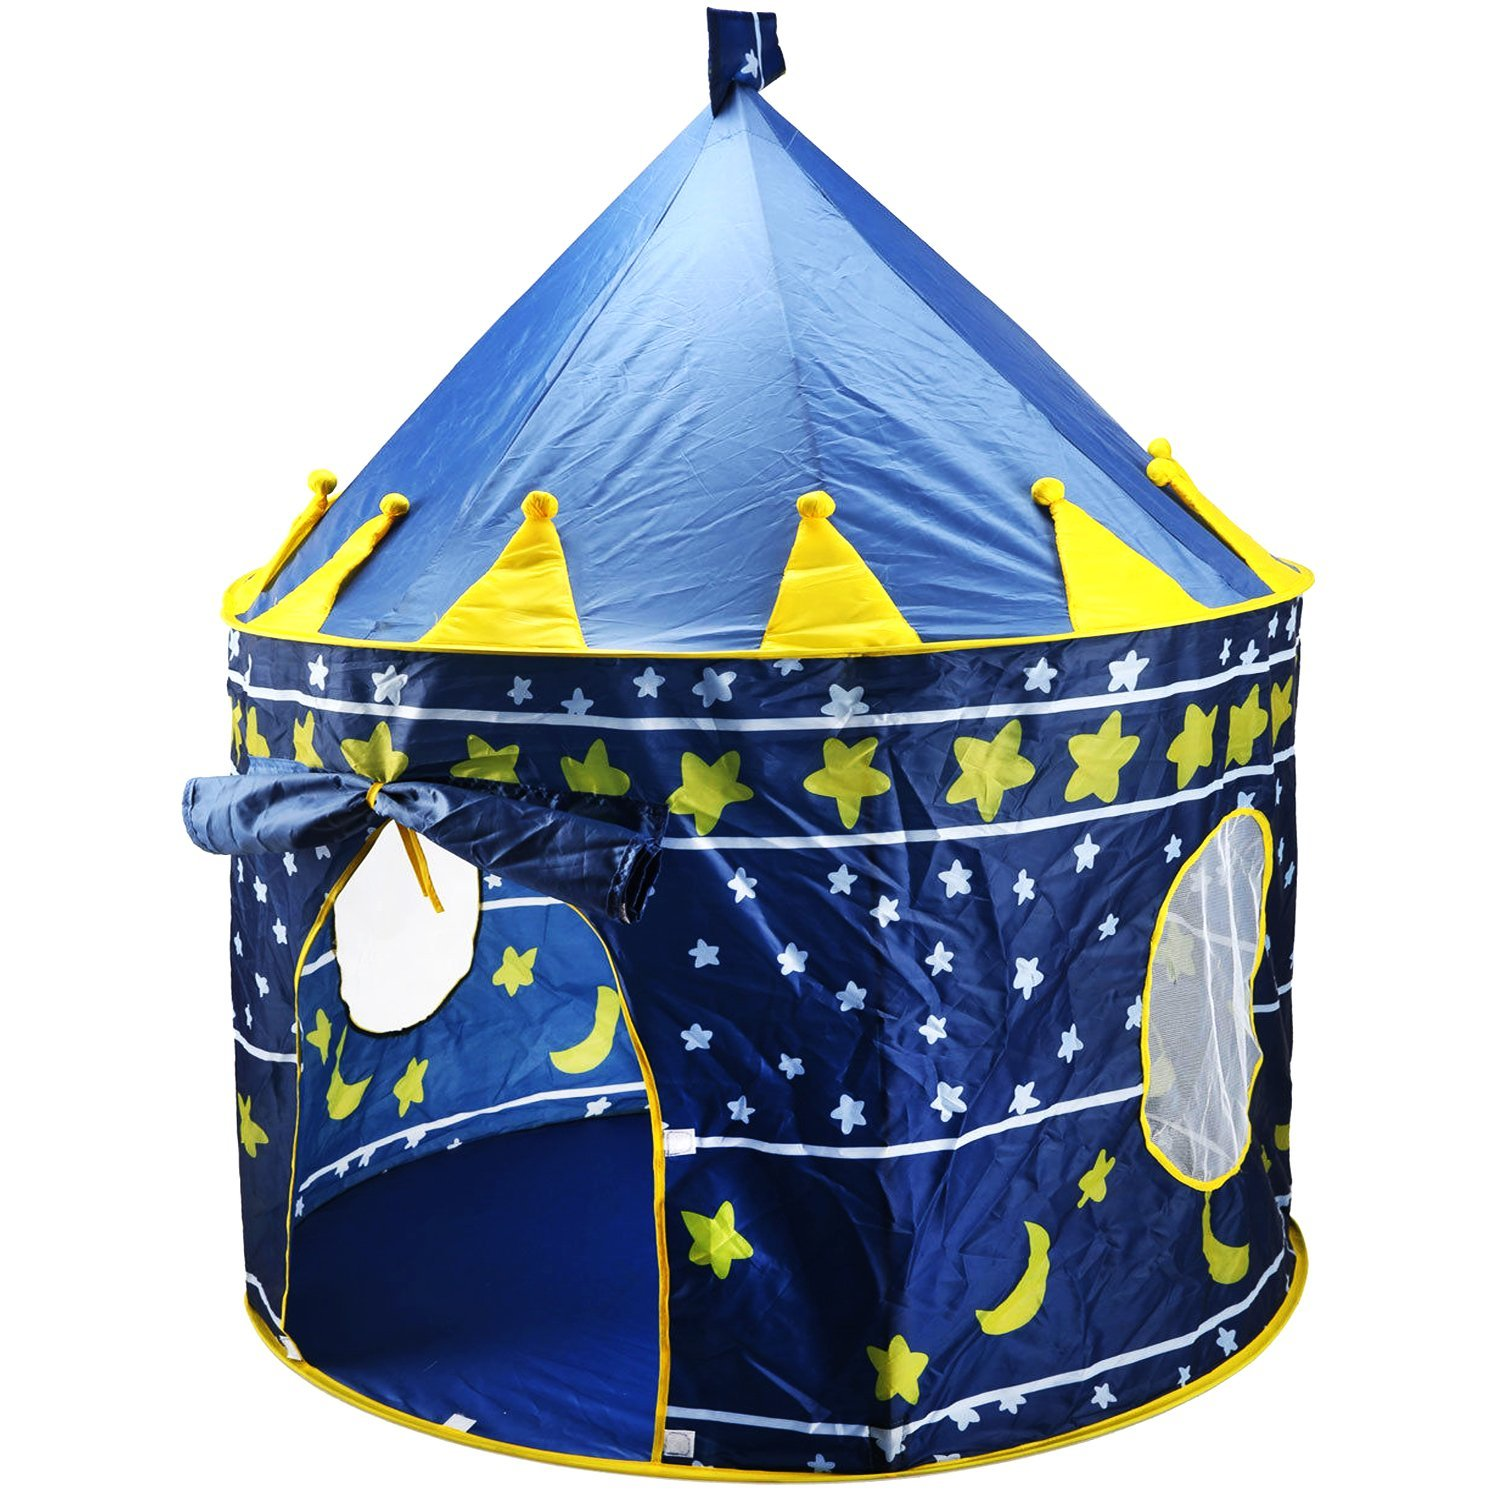 Children Play Tent Boys Girls Prince House Indoor Outdoor Blue Foldable Tent with Case by Creatov